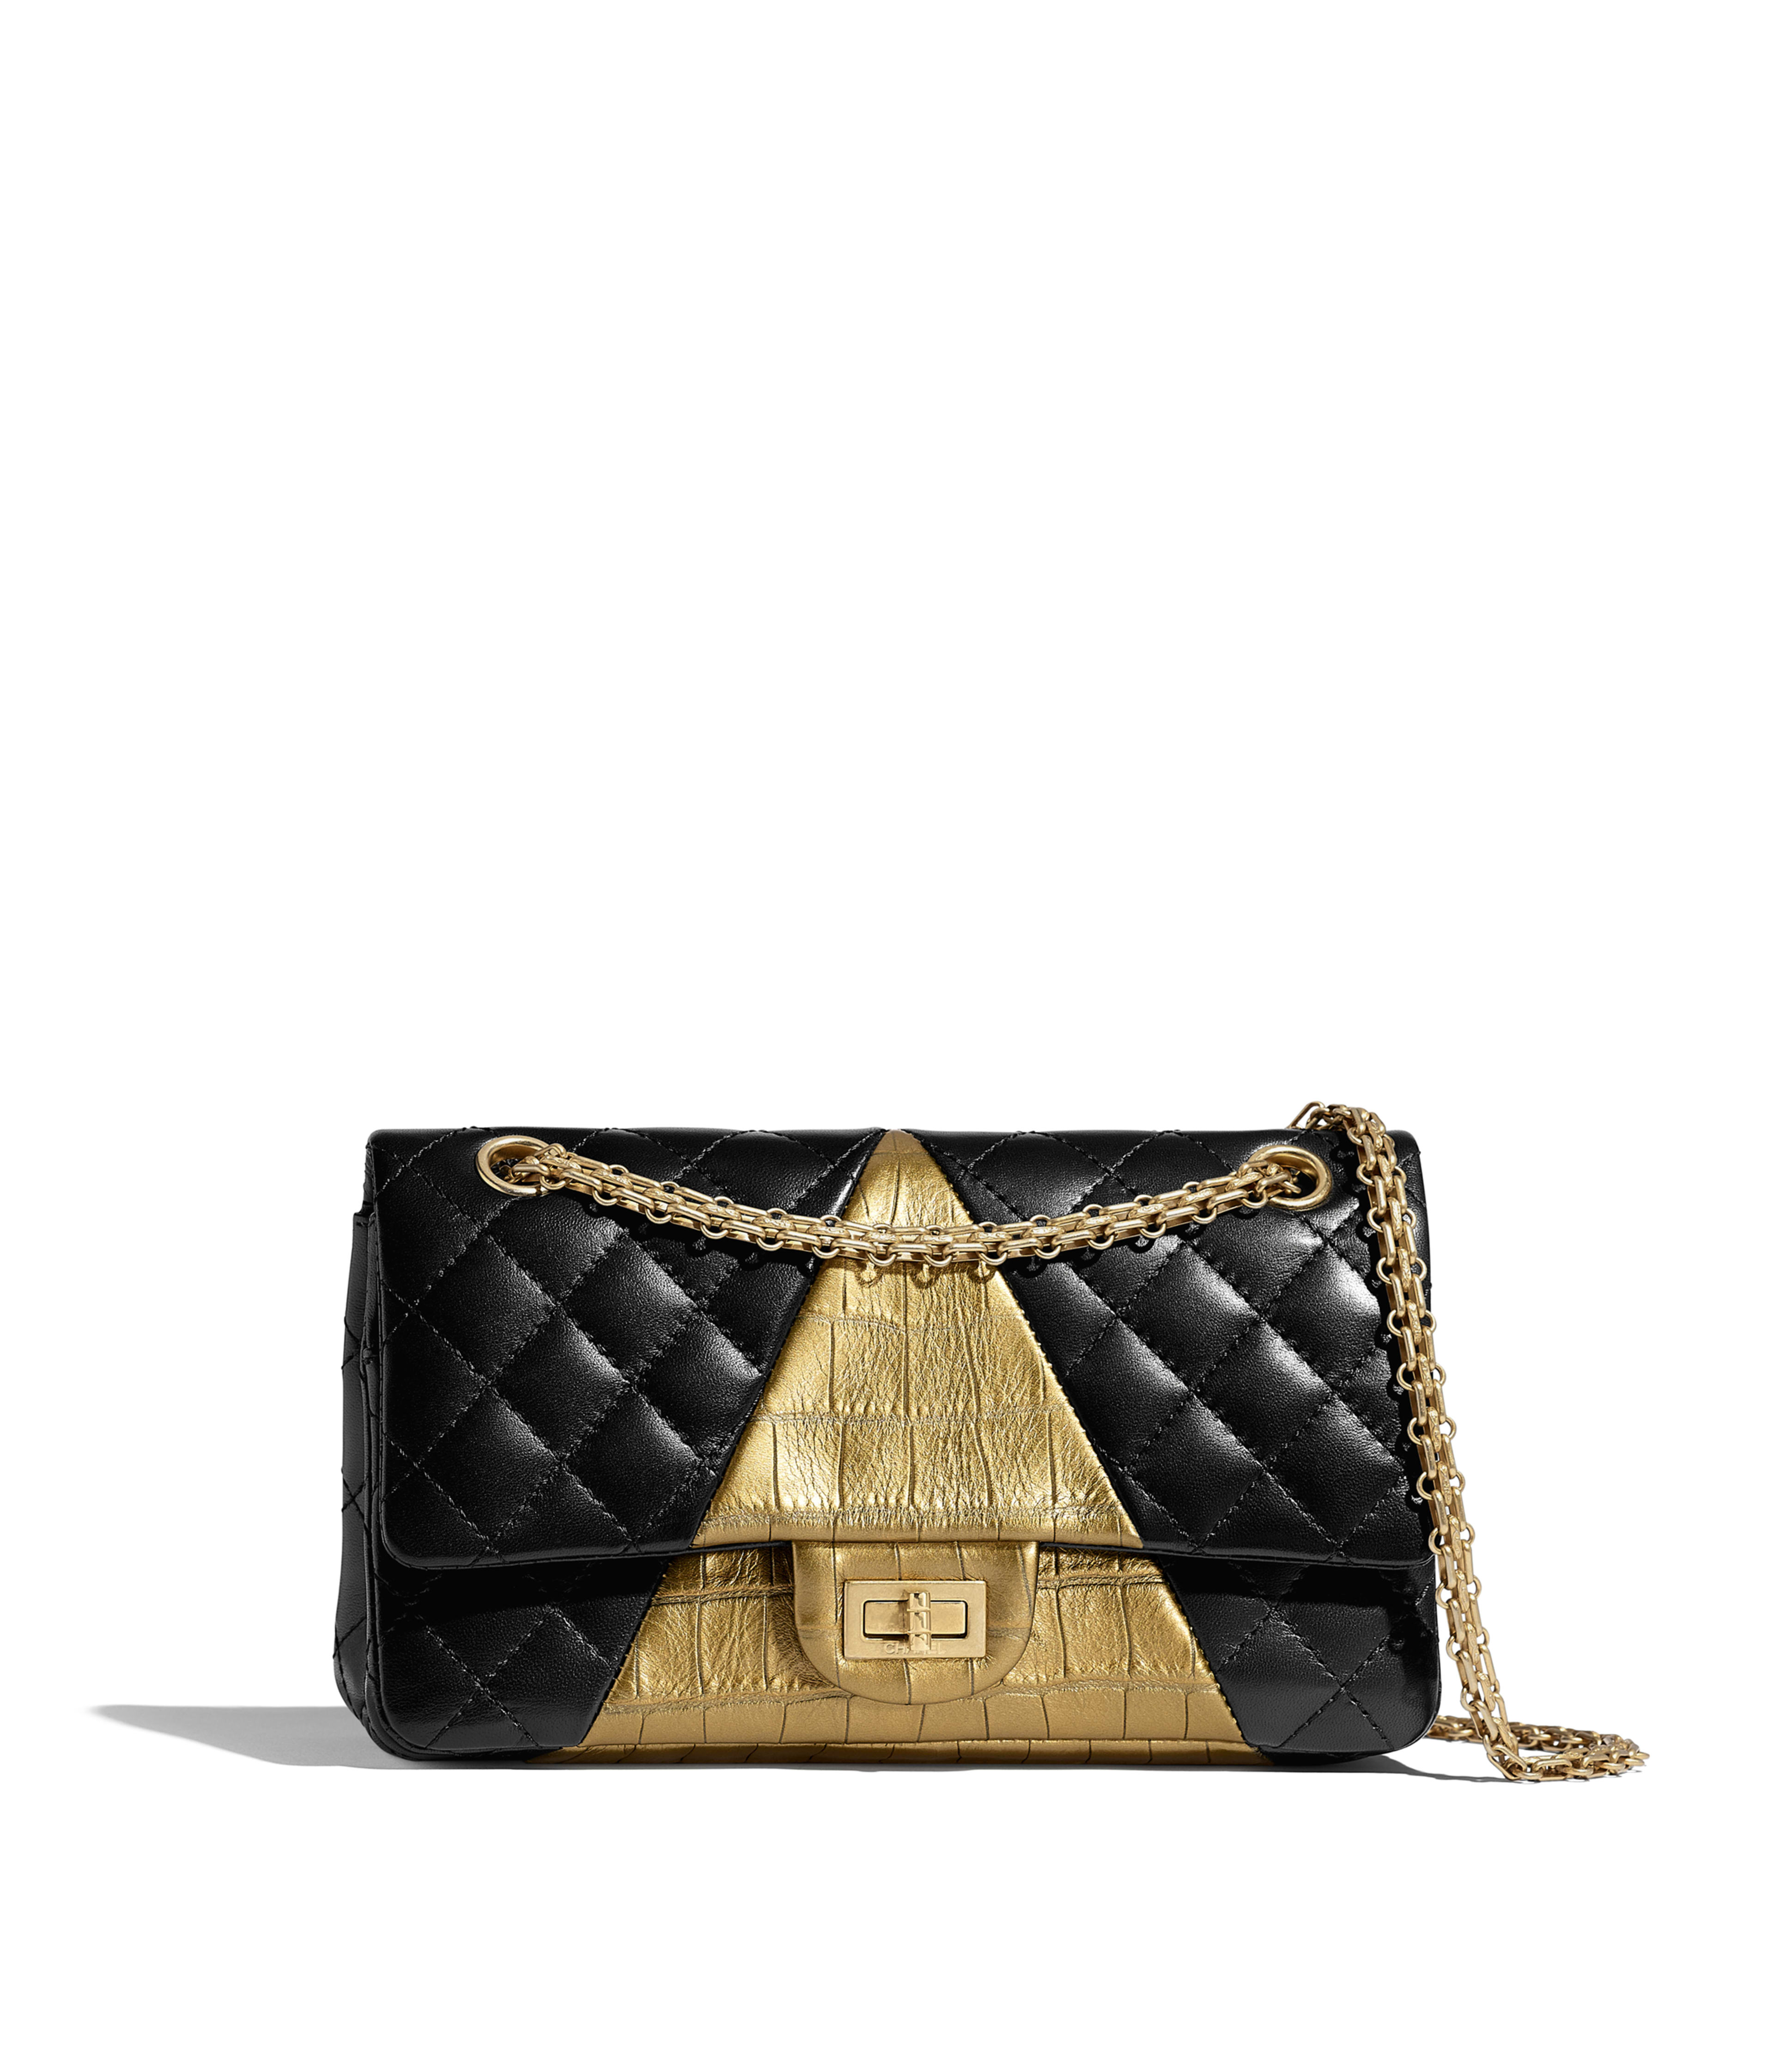 54a15add021823 2.55 Handbag Lambskin, Crocodile Embossed Calfskin & Gold-Tone Metal, Black  & Gold Ref. A37586B01066N0784